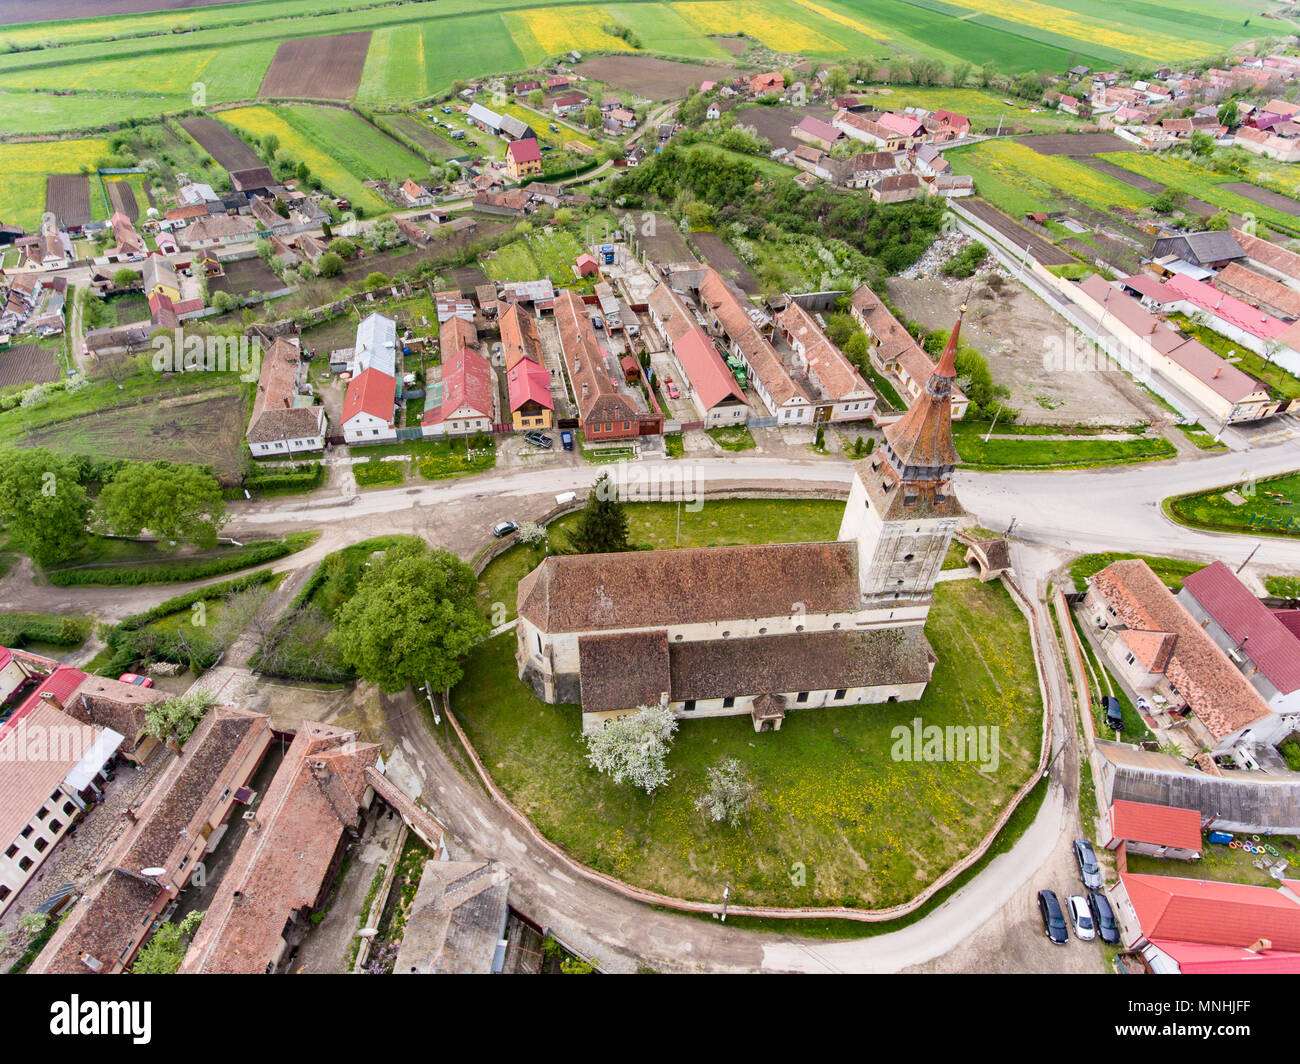 Feldioara fortified Church near Brasov, Transilvania, Romania. Aerial view from a drone. - Stock Image